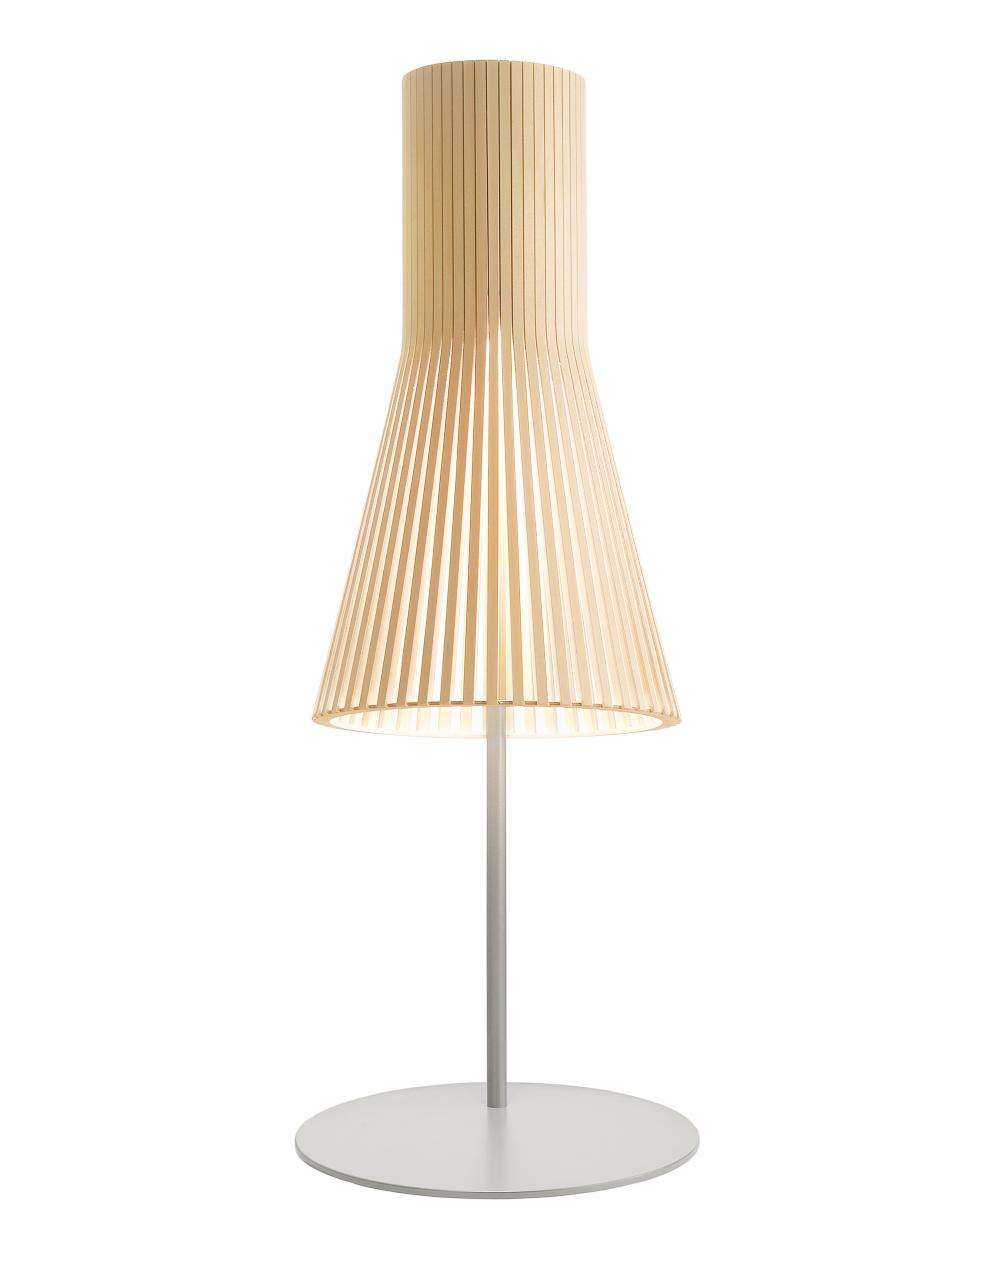 Secto table lamp